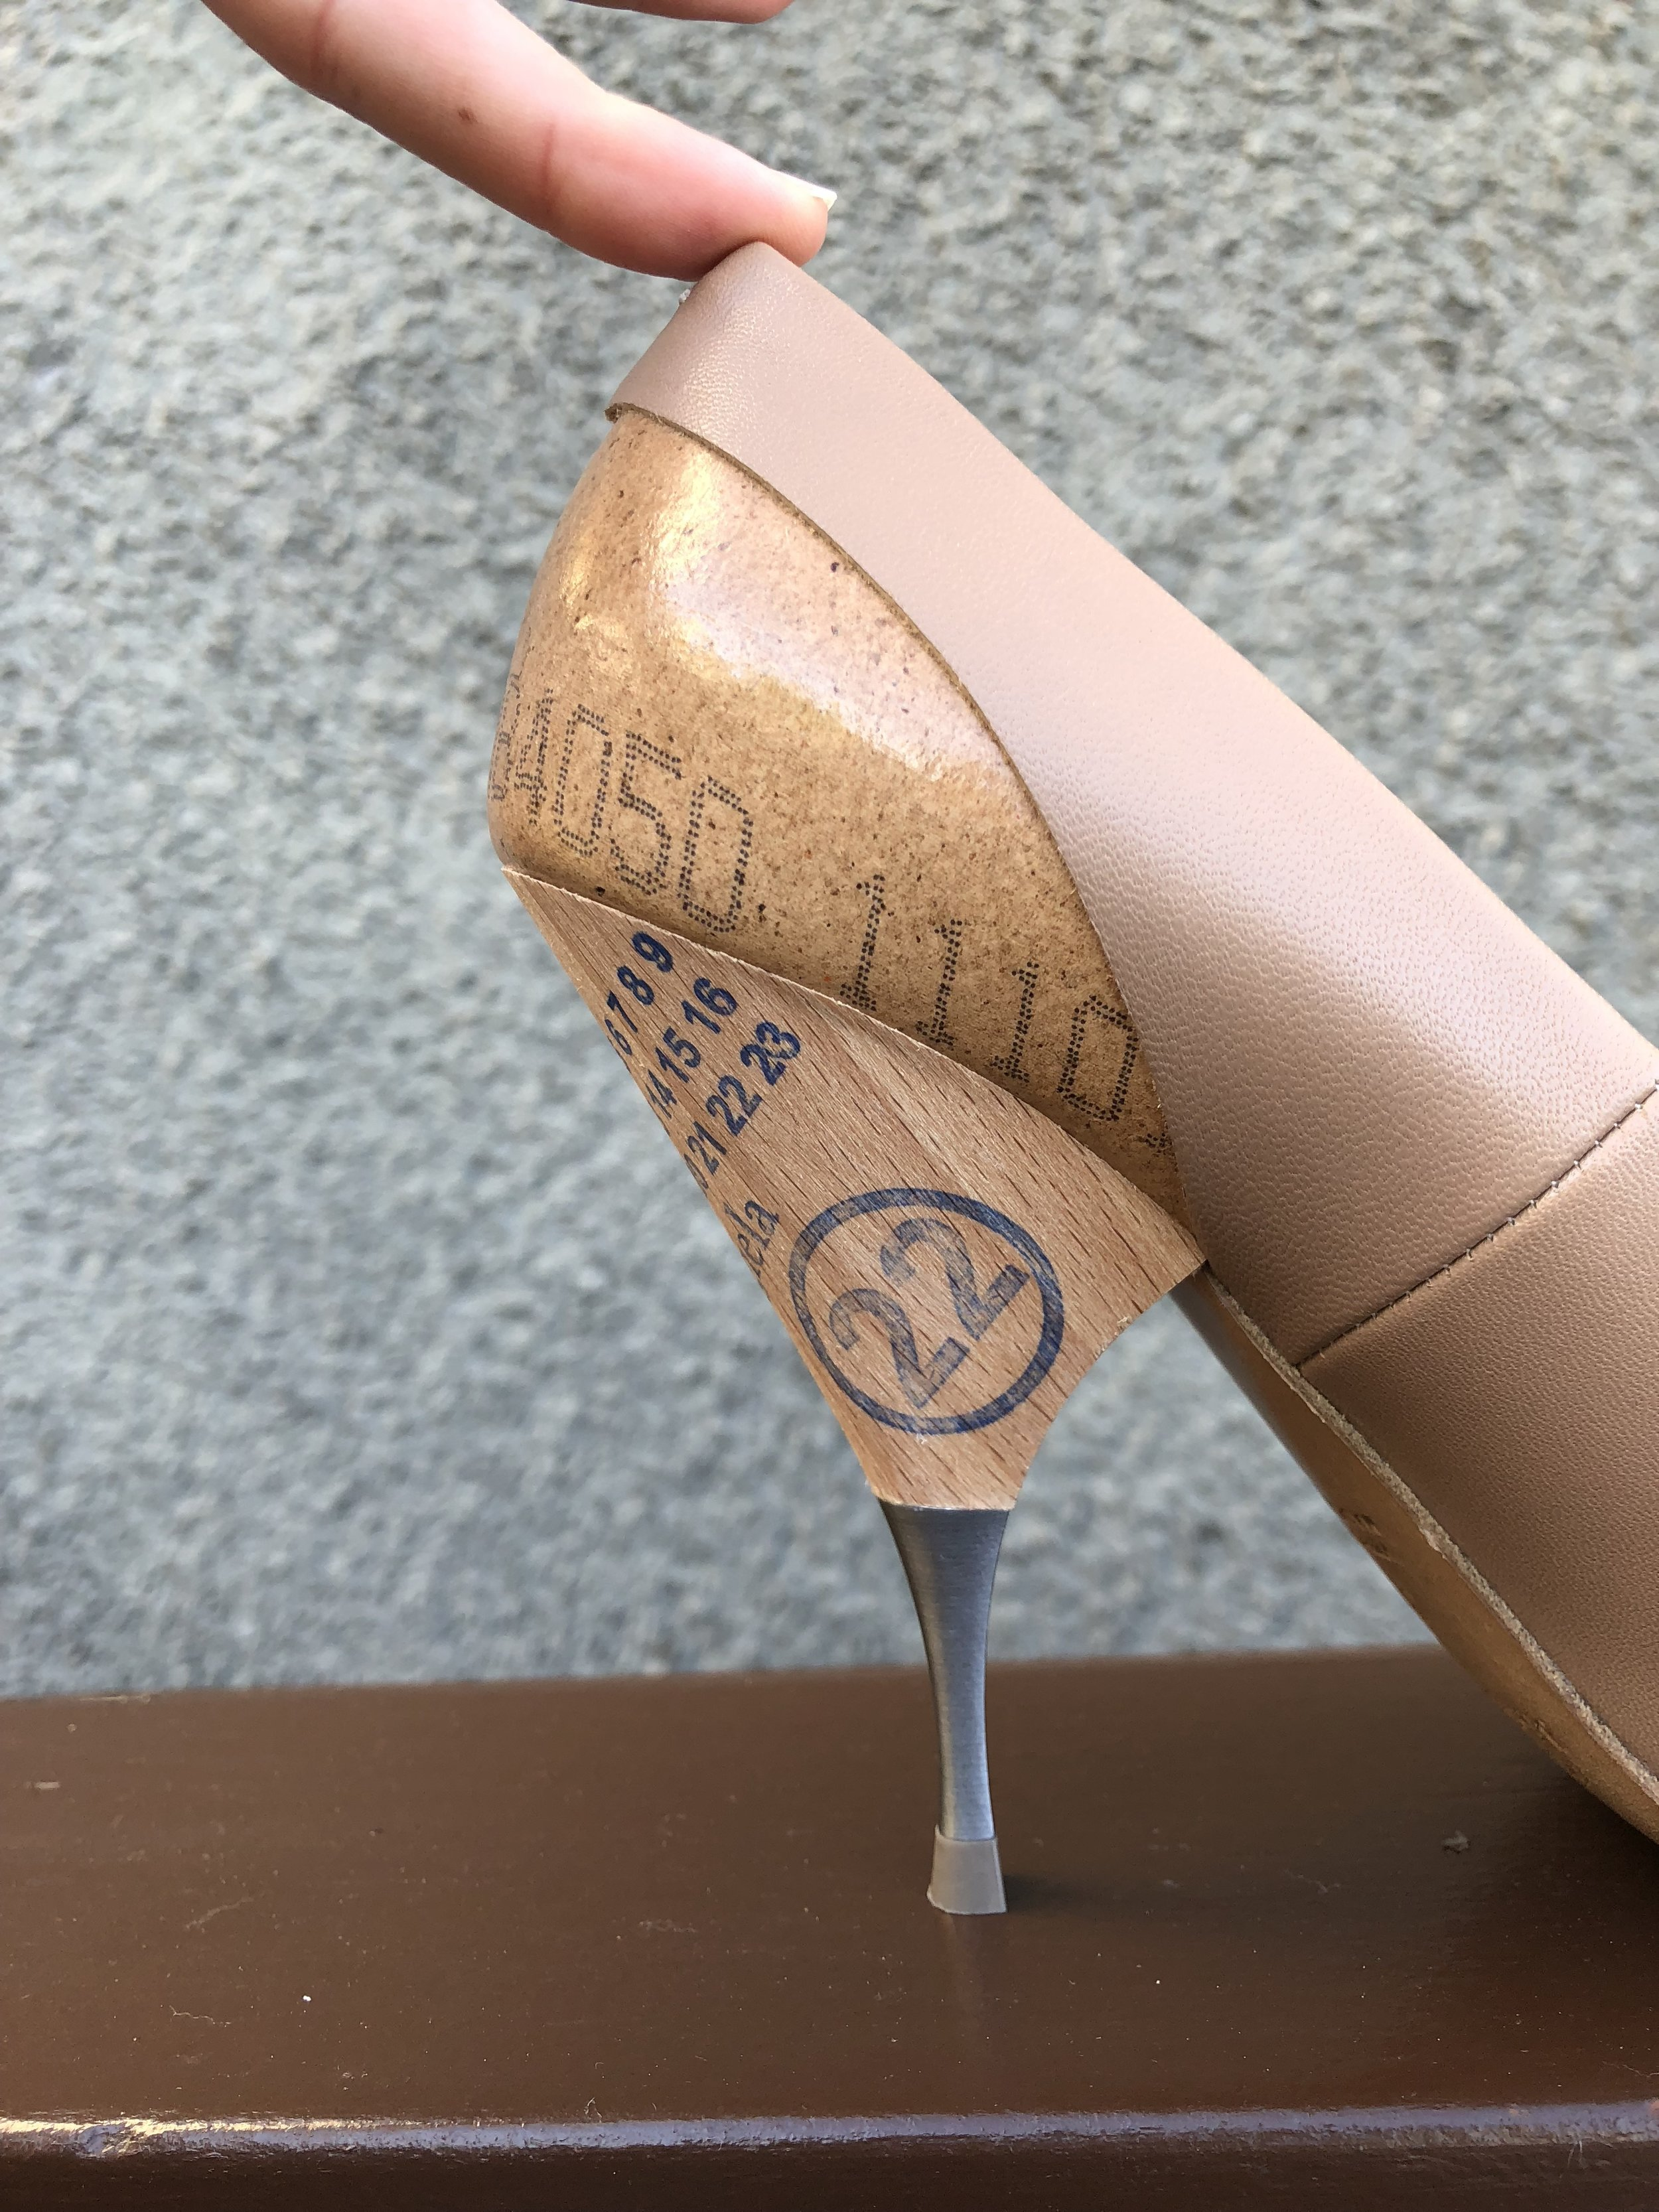 Those ain't your average nude heel. Margiela does it again!